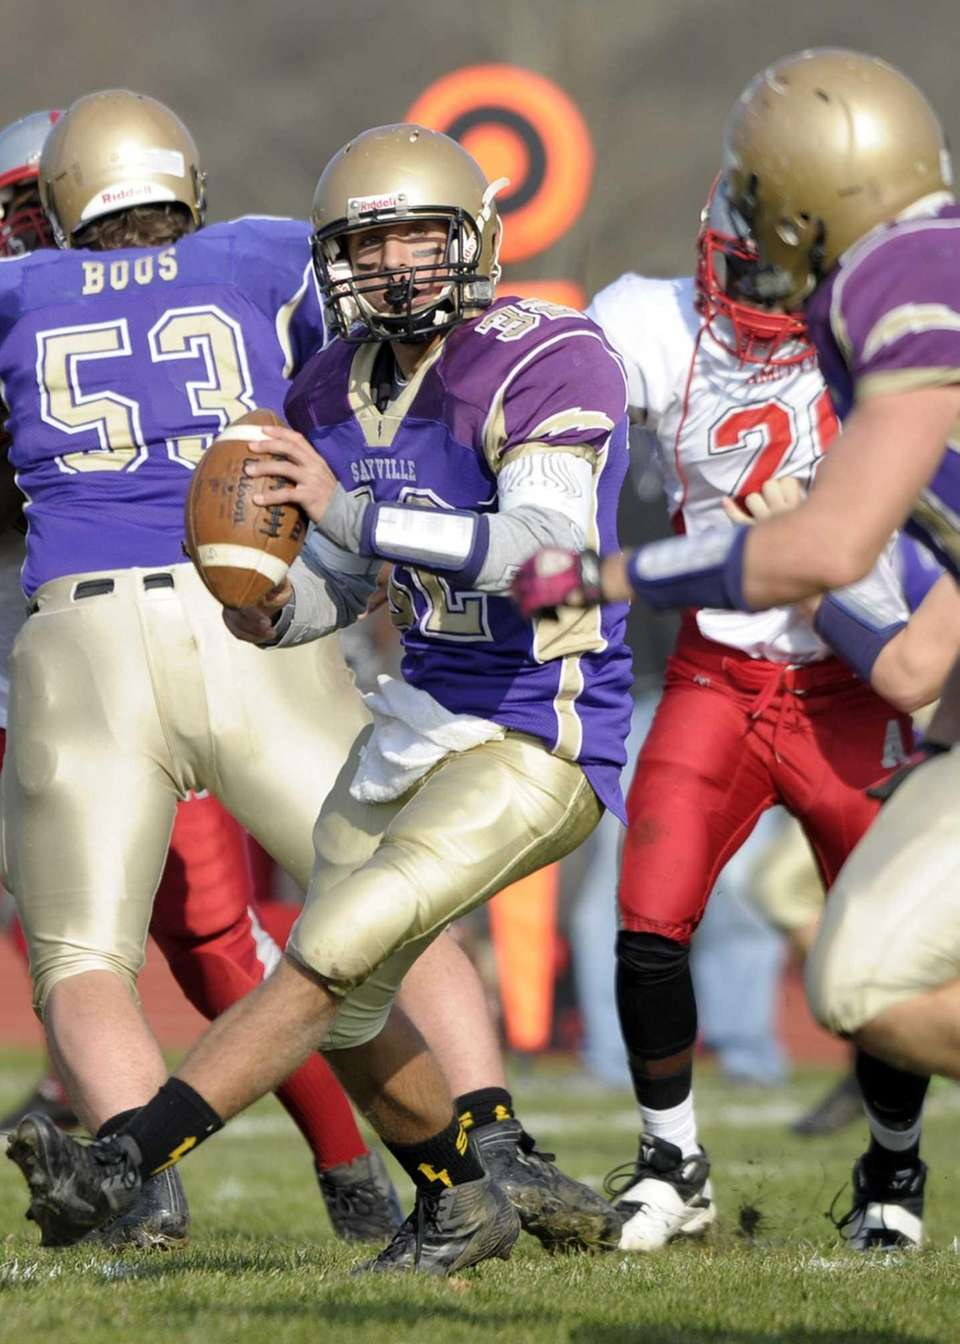 Sayville's Zachery Sirico pitches the ball to running